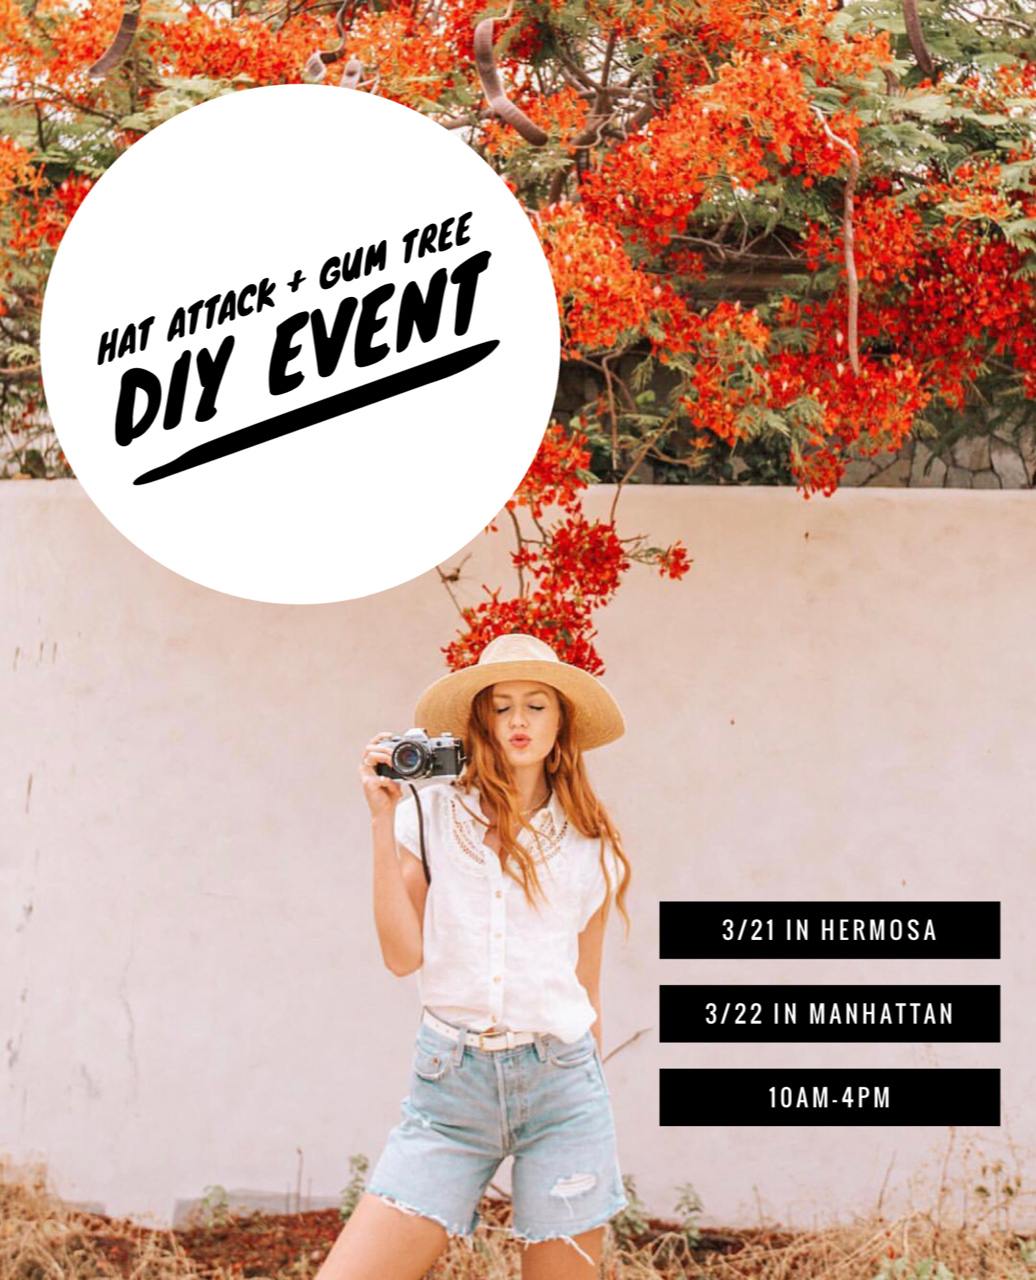 diy_event_2019.png